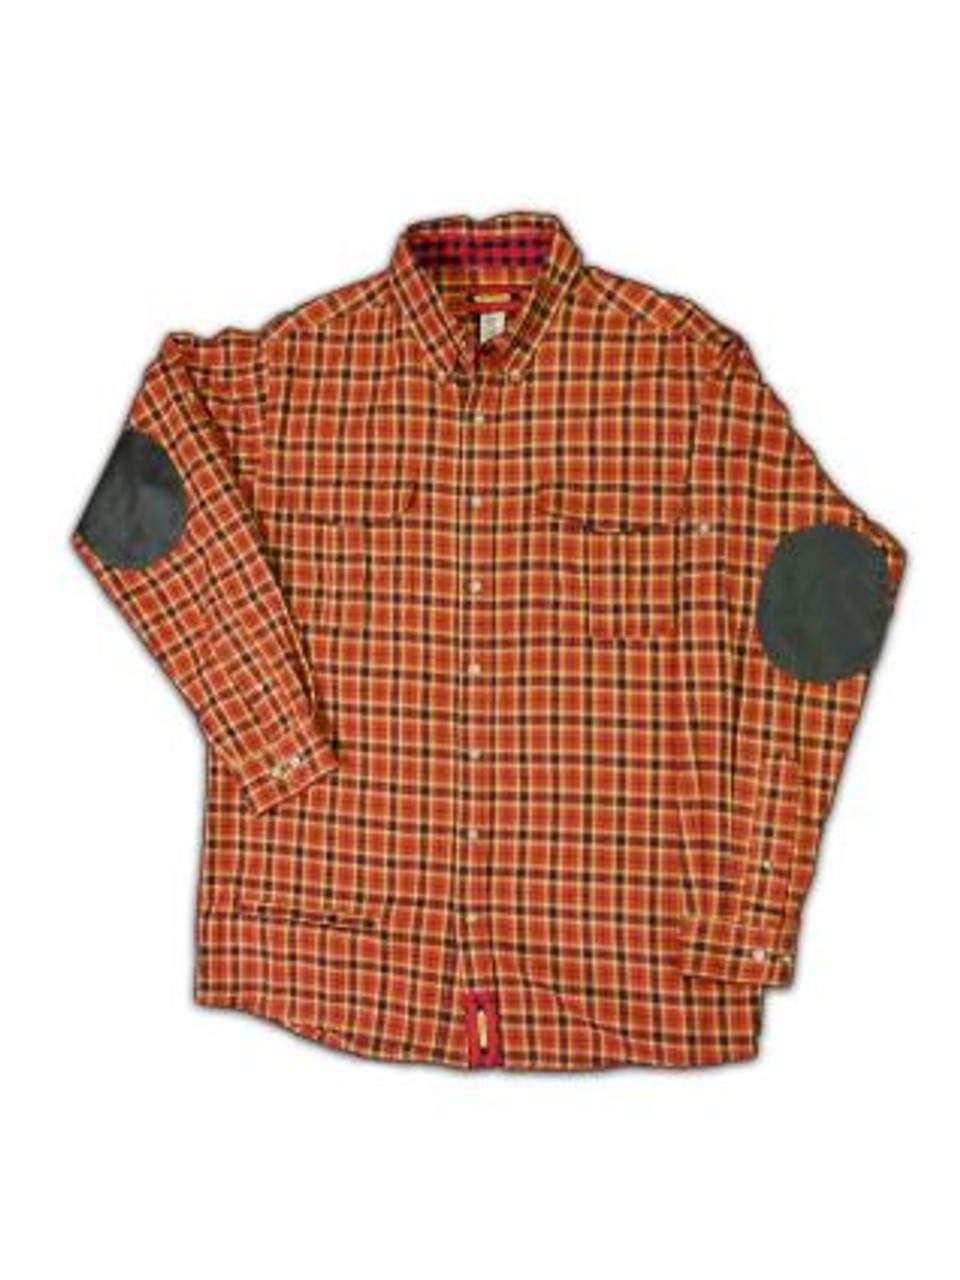 Paddock - Rust Brown Beige Plaid - 25% OFF